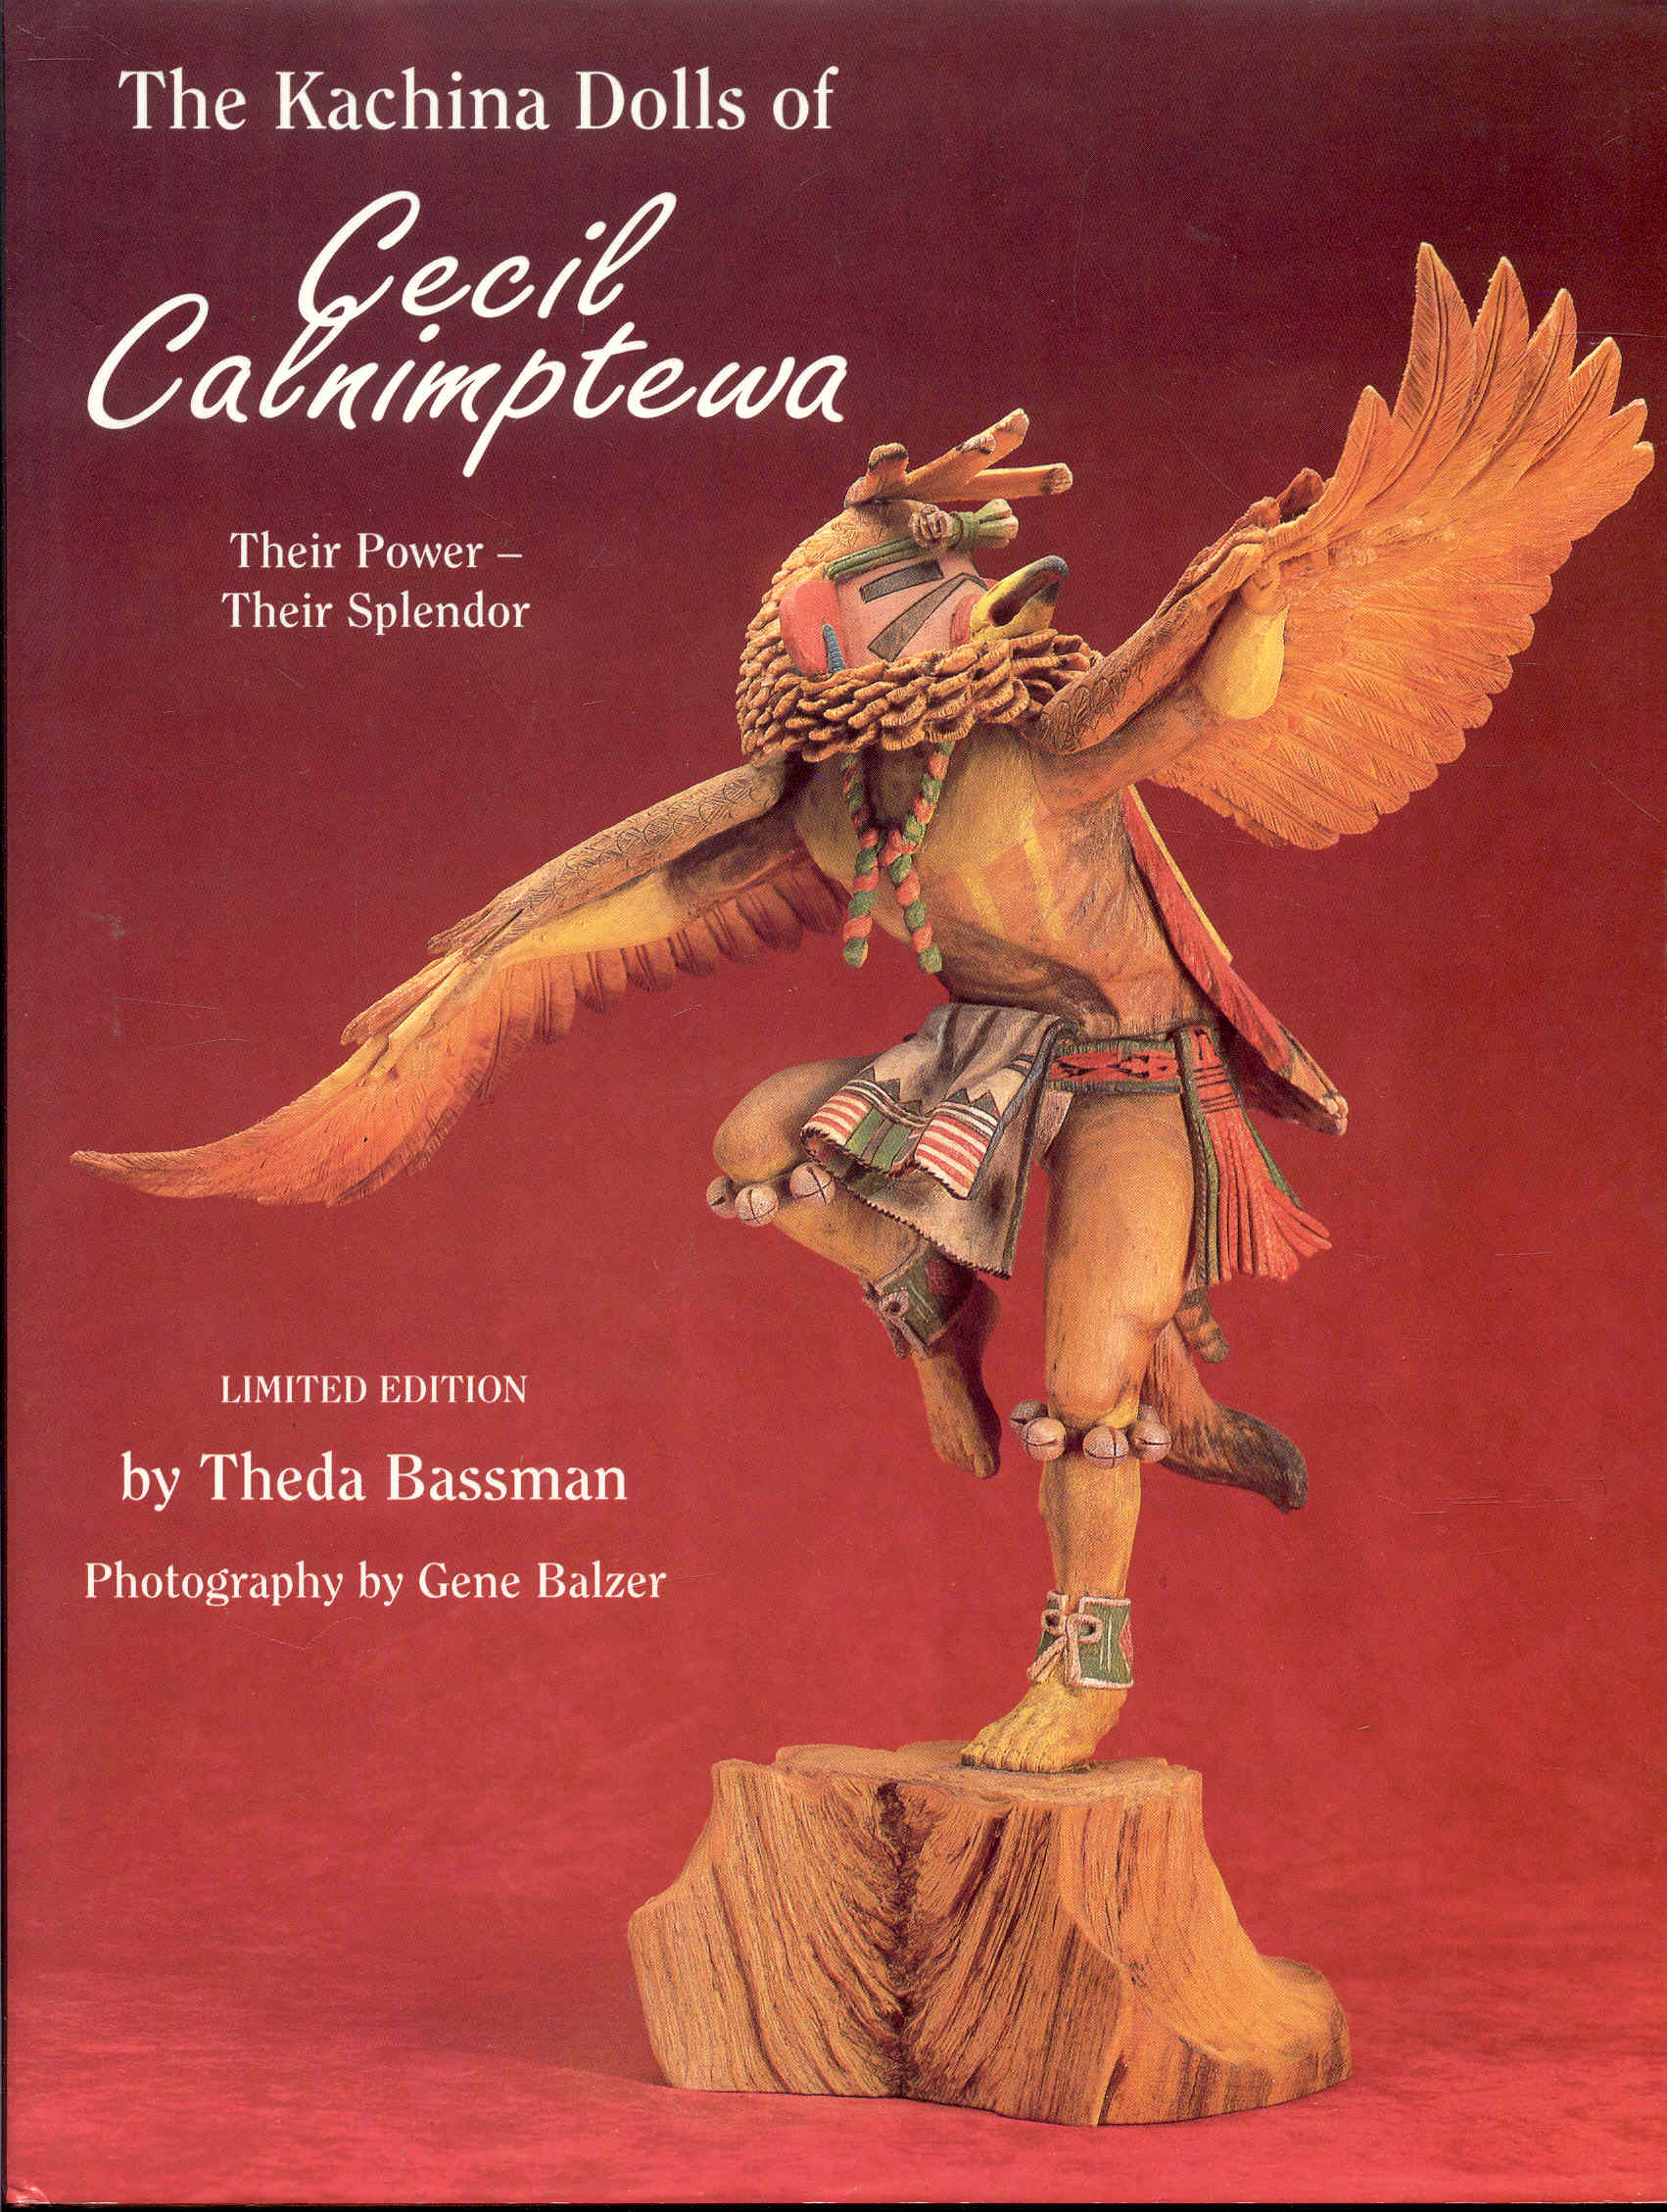 Image for The Kachina Dolls of Cecil Calnimptewa: Their Power - Their Splendor